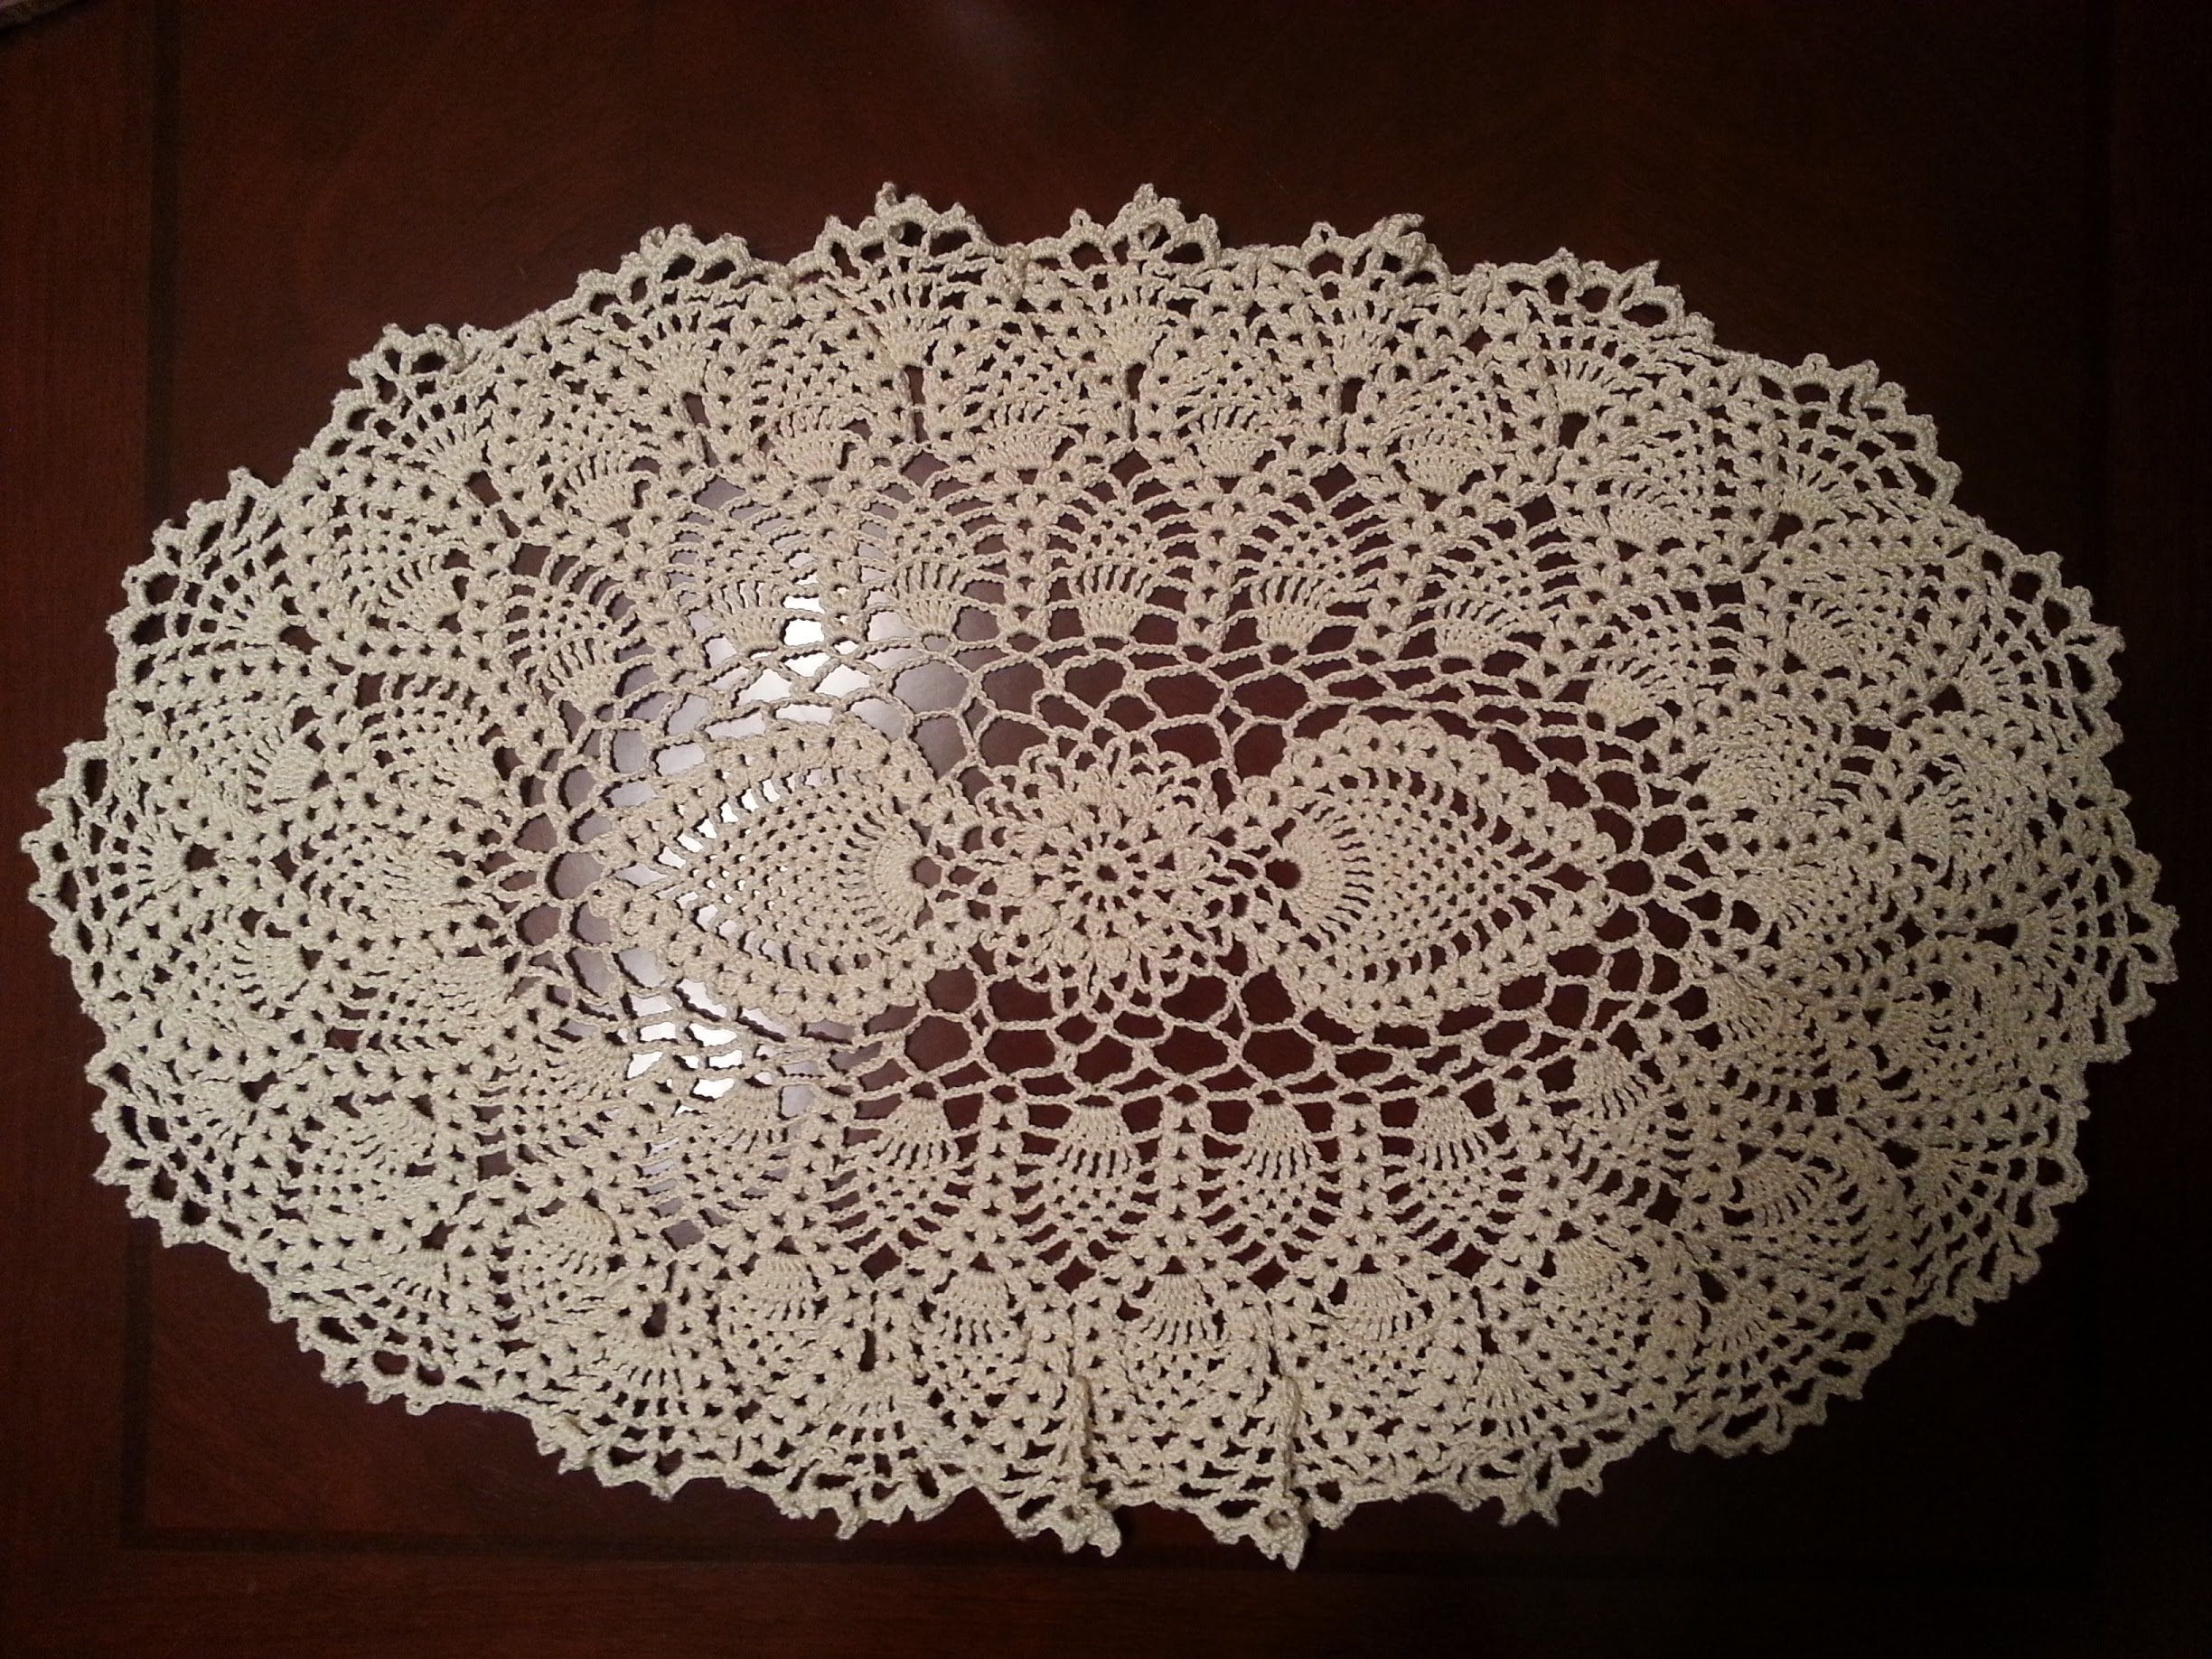 Tisch Decken Video Oval Pineapple Doily Part 2 Youtube Crochet Doily 39s